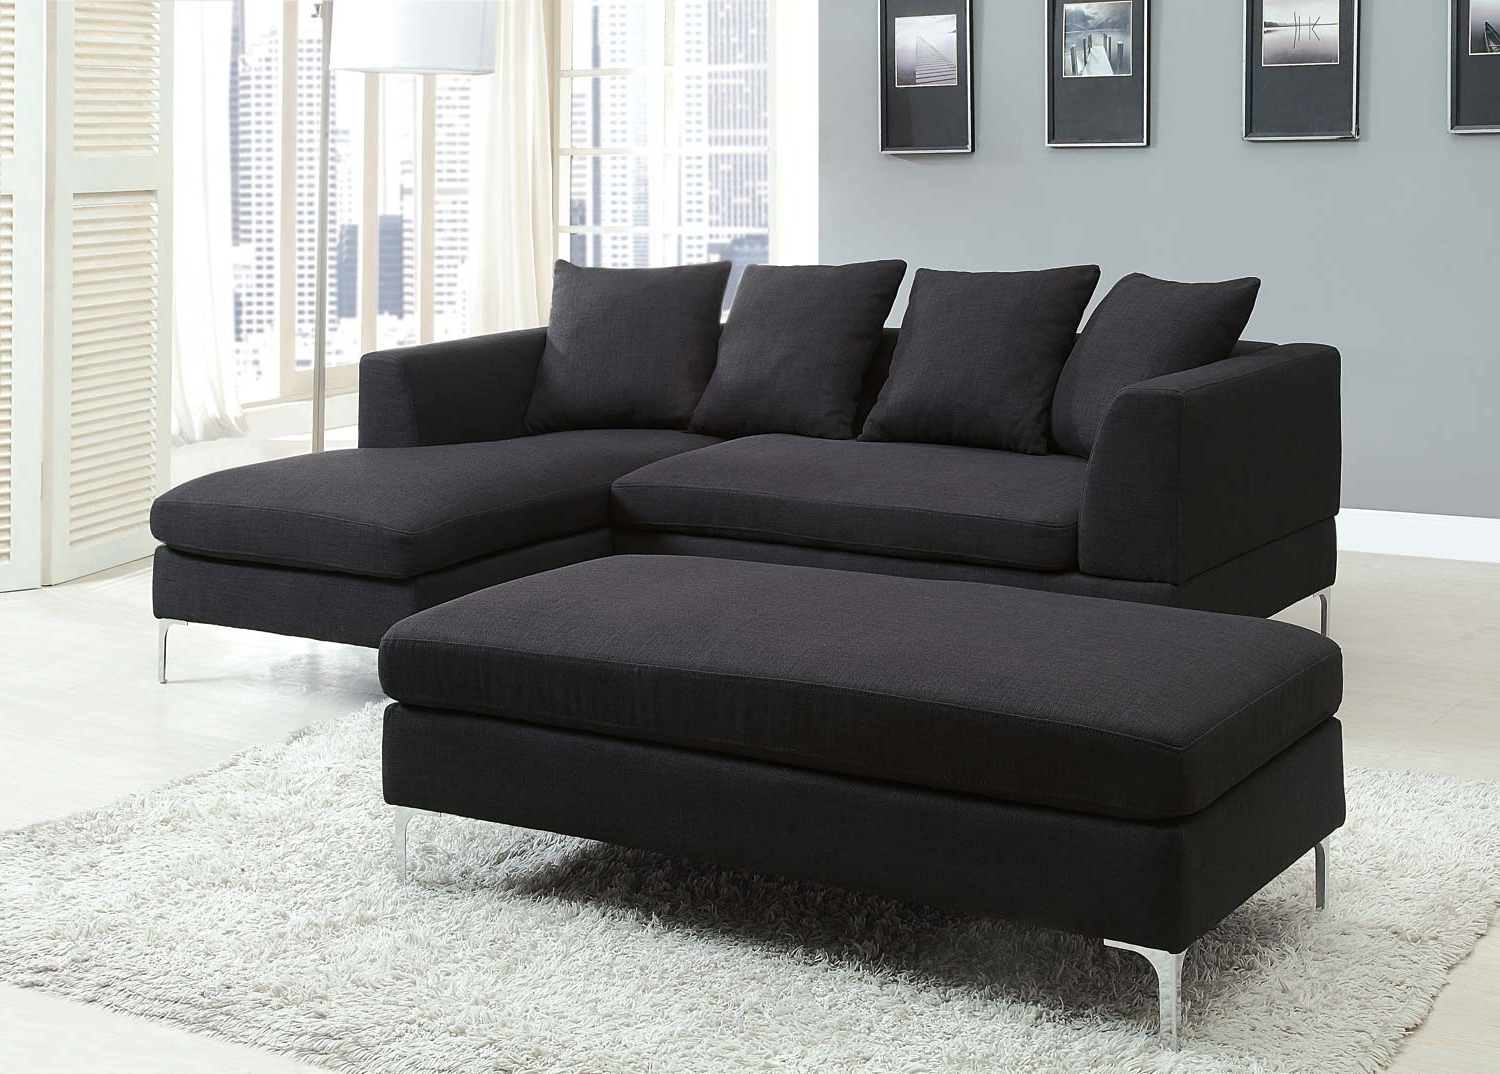 Black Sectional Sofas Regarding Most Recent Black Sectional Couch Cheap — Radionigerialagos (View 6 of 20)